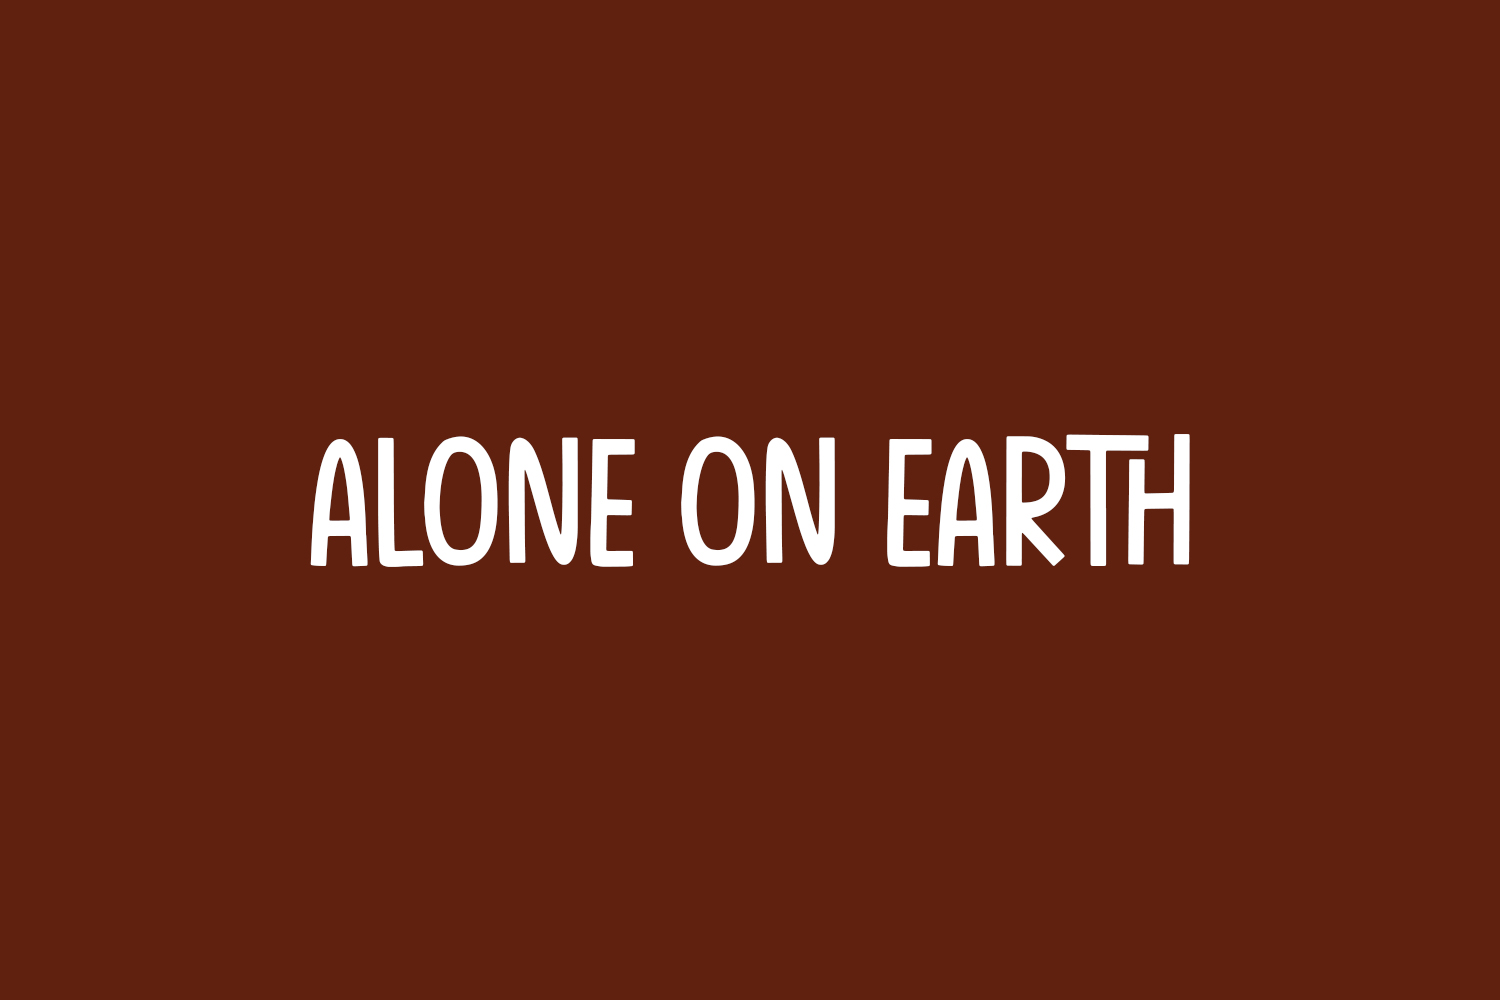 Alone On Earth Free Font